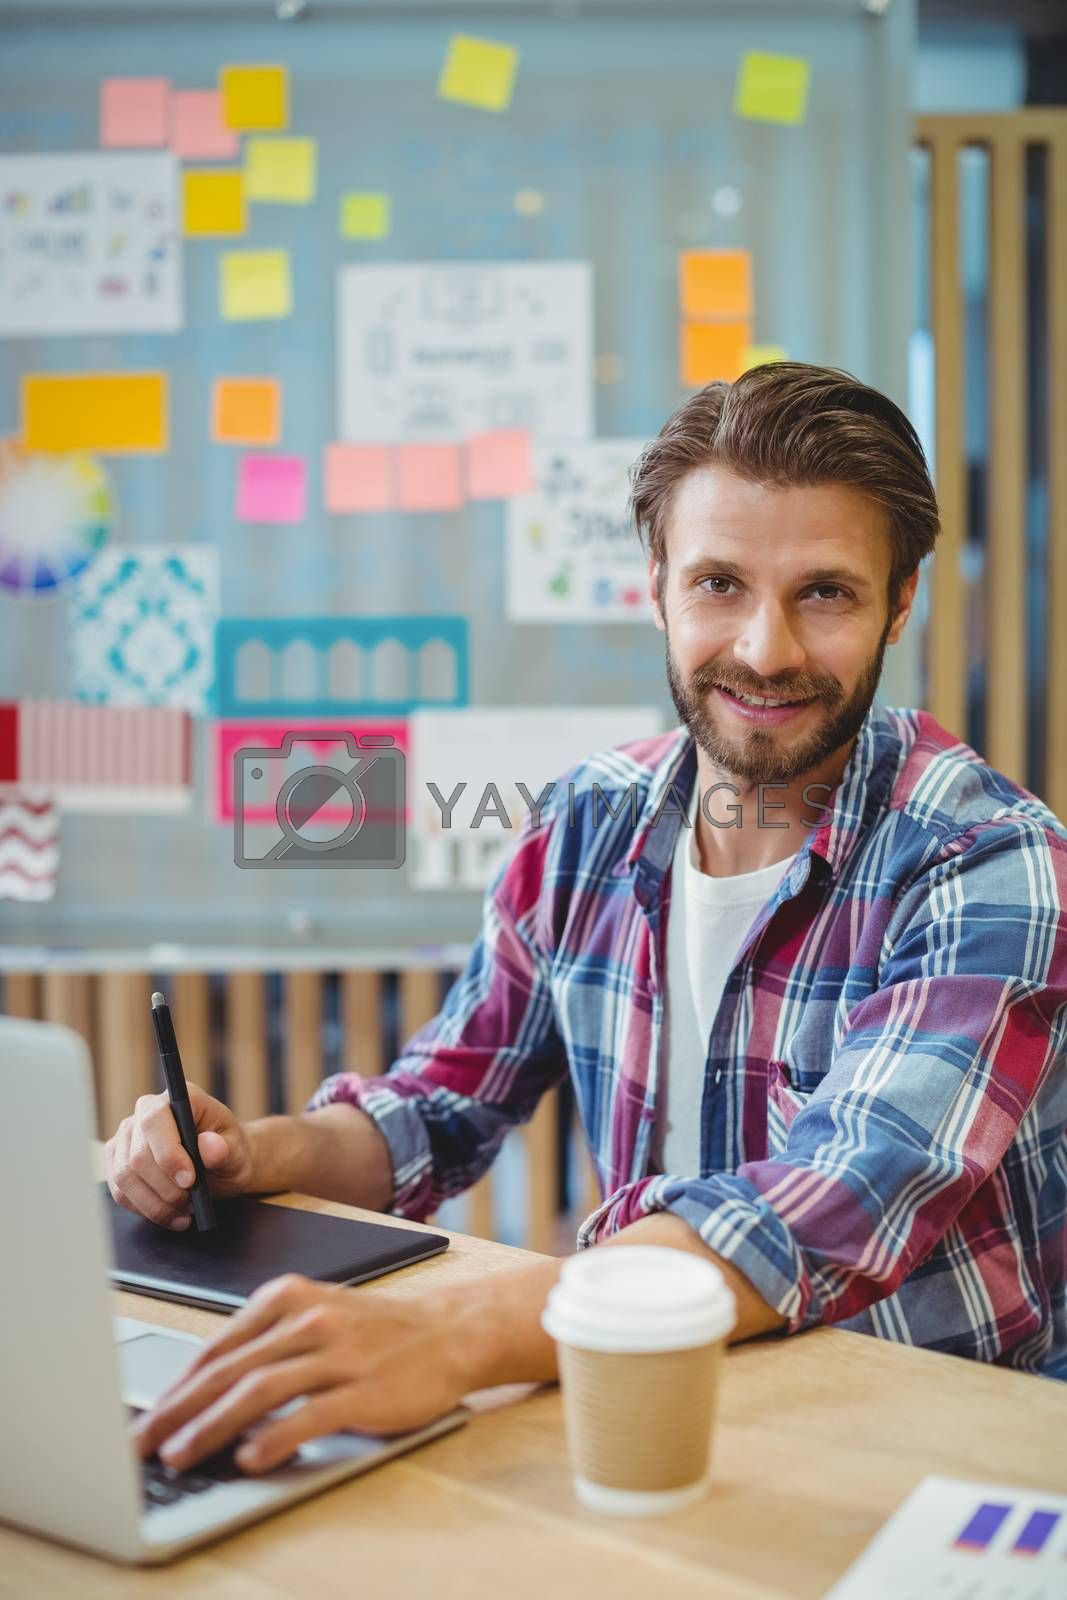 Portrait of happy graphic designer using laptop and graphic tablet in office